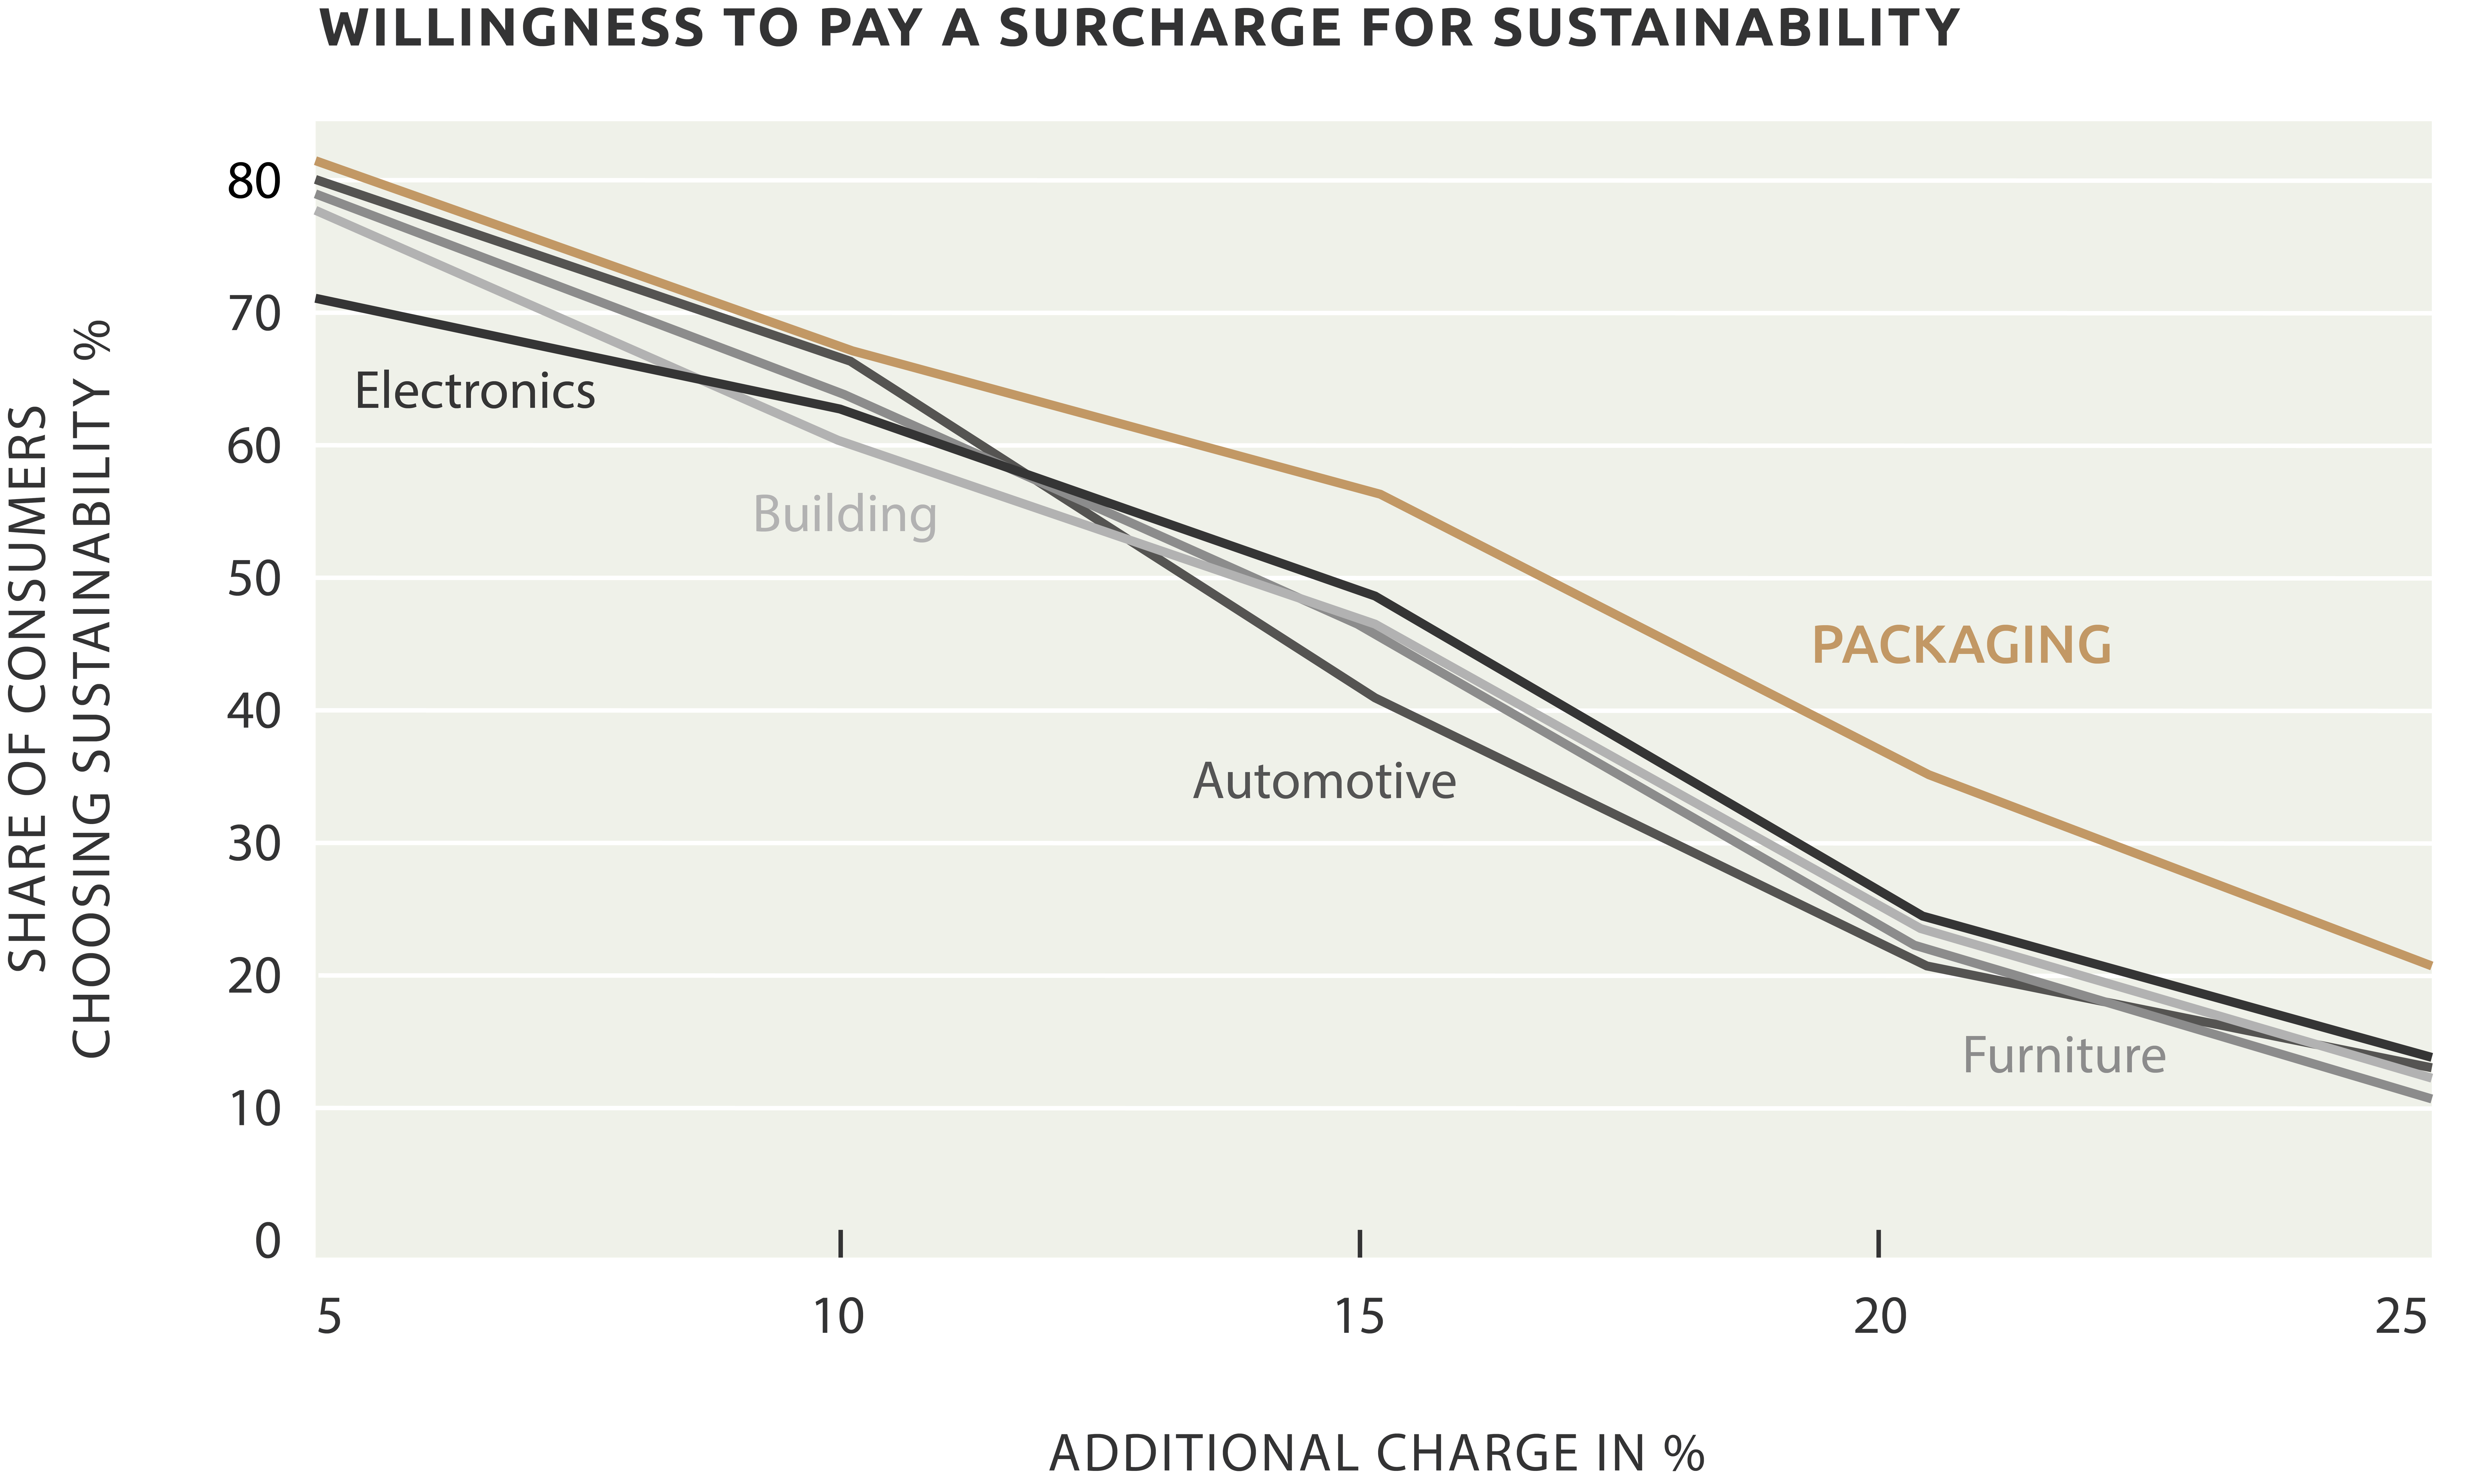 willingness to pay a surcharge for sustainability